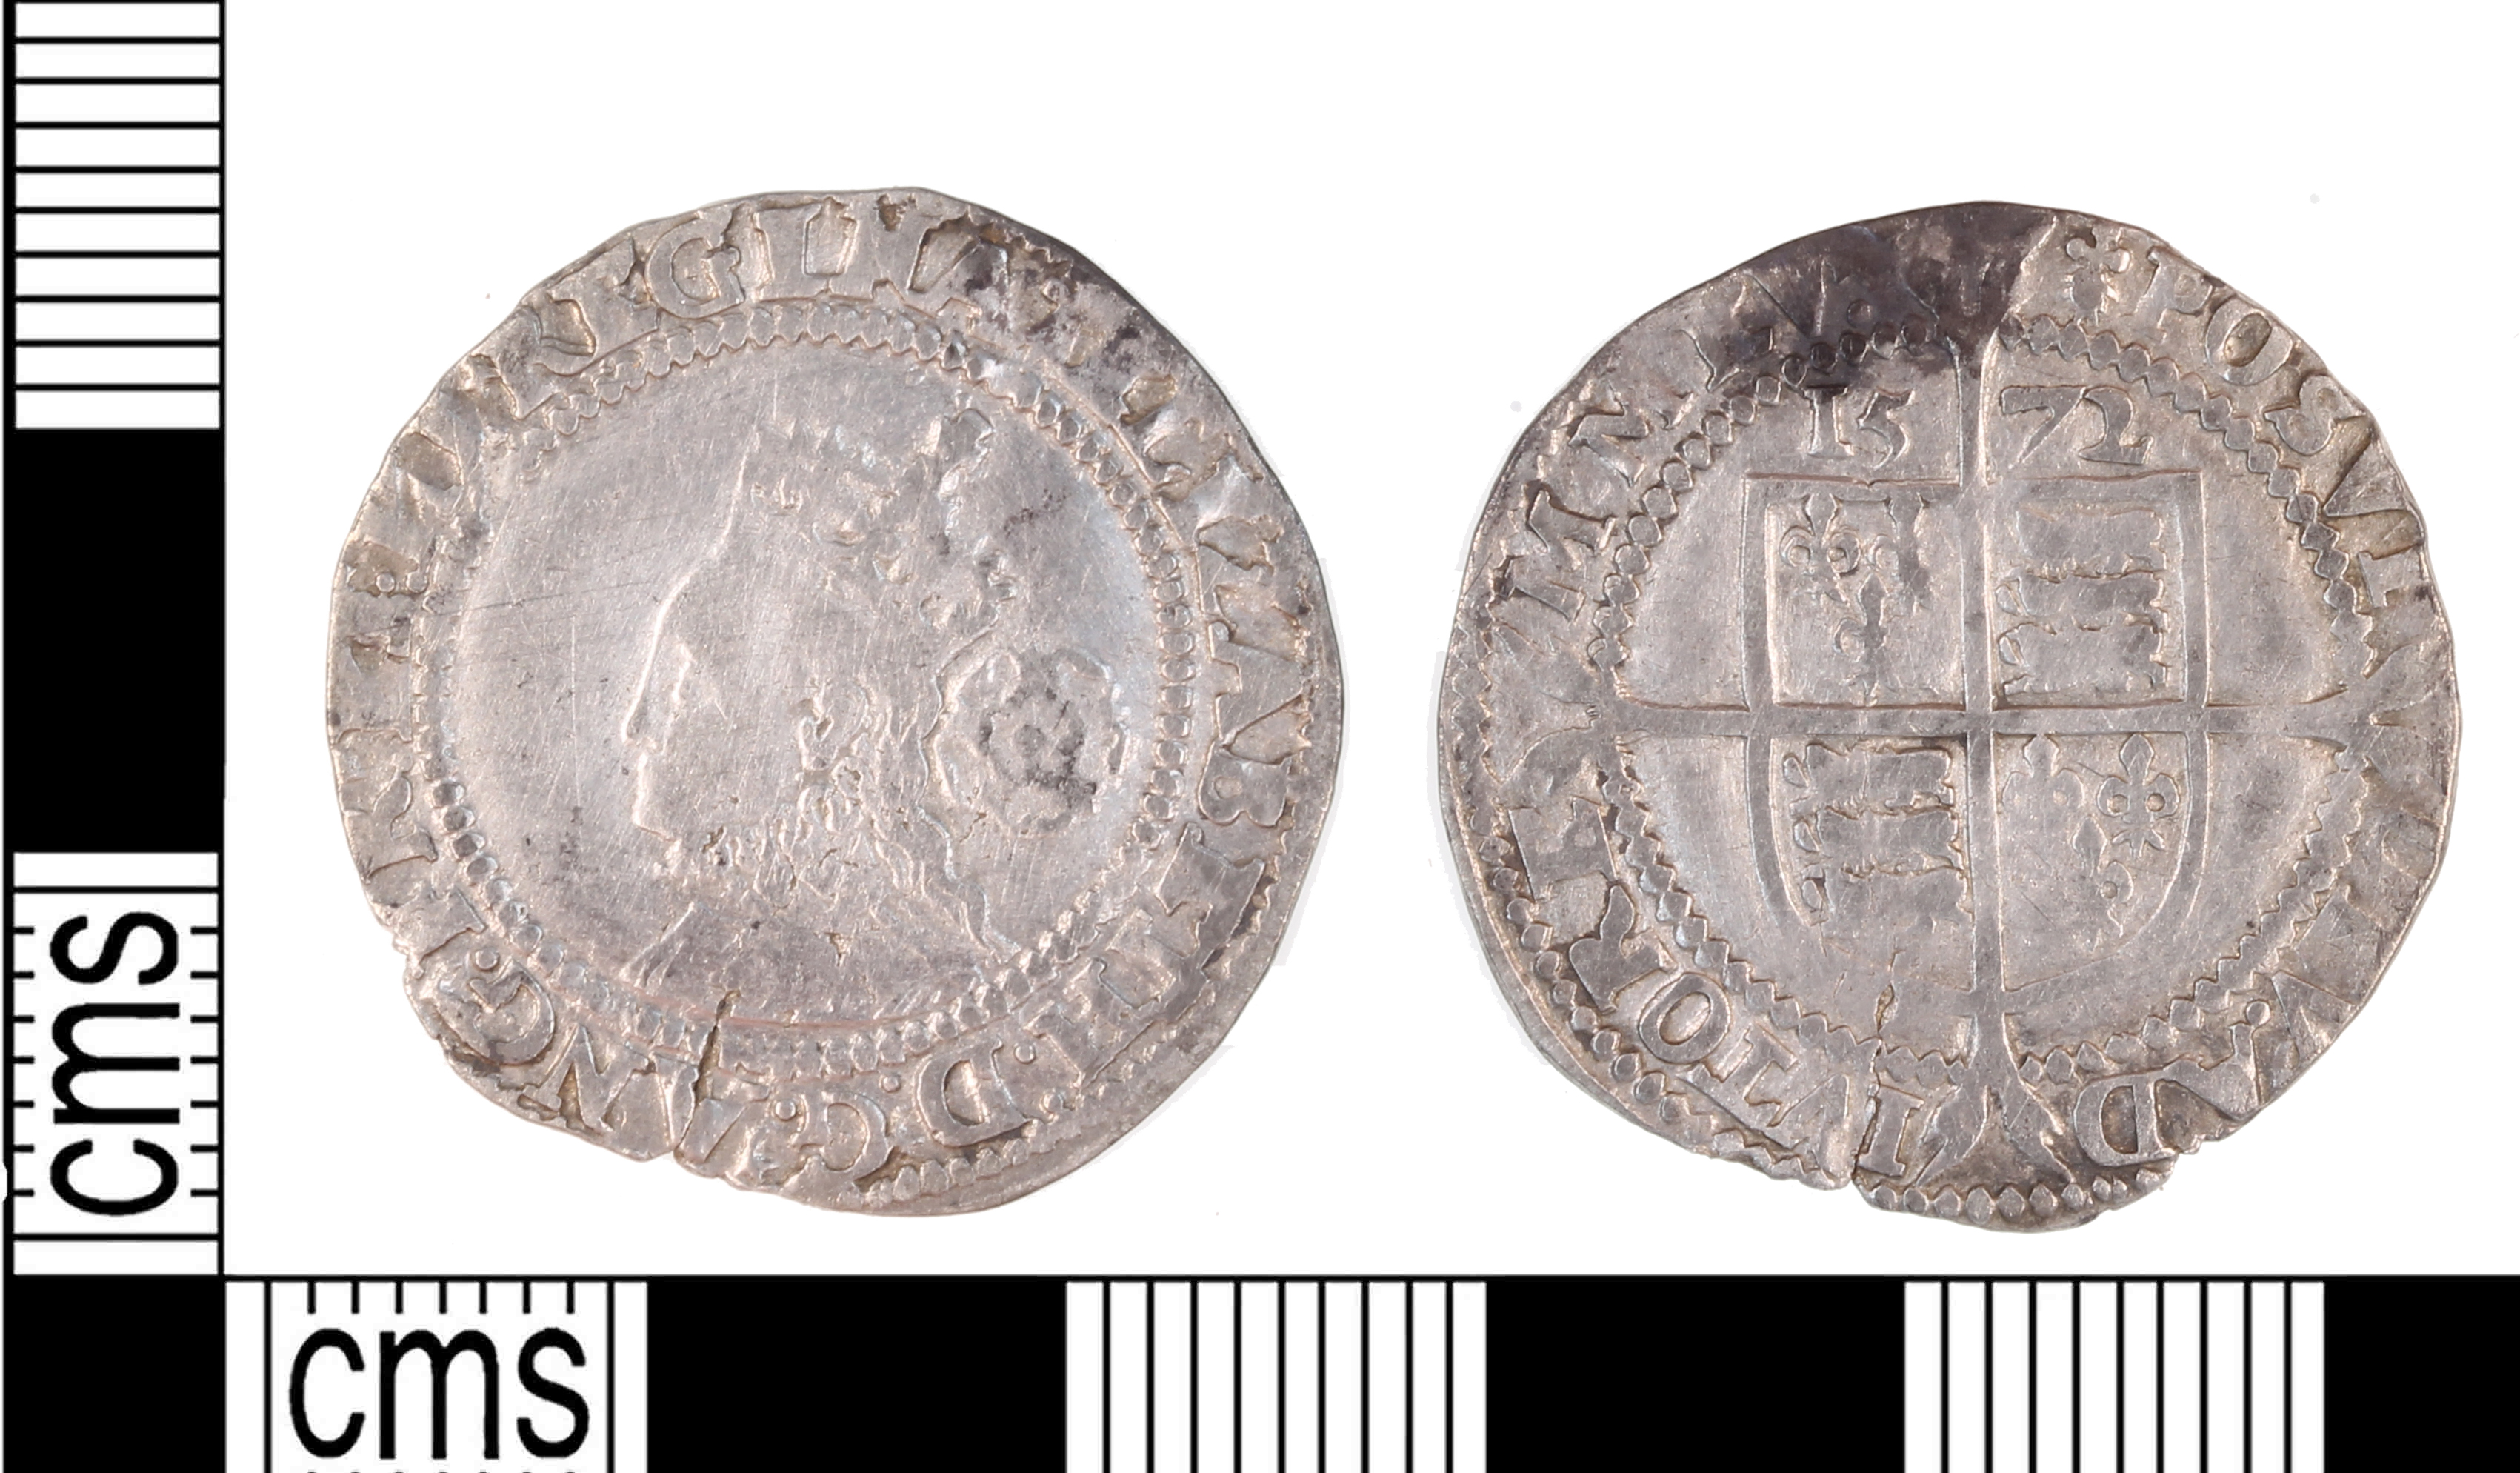 An image of an Elizabethan sixpence, a common feature of money folklore.